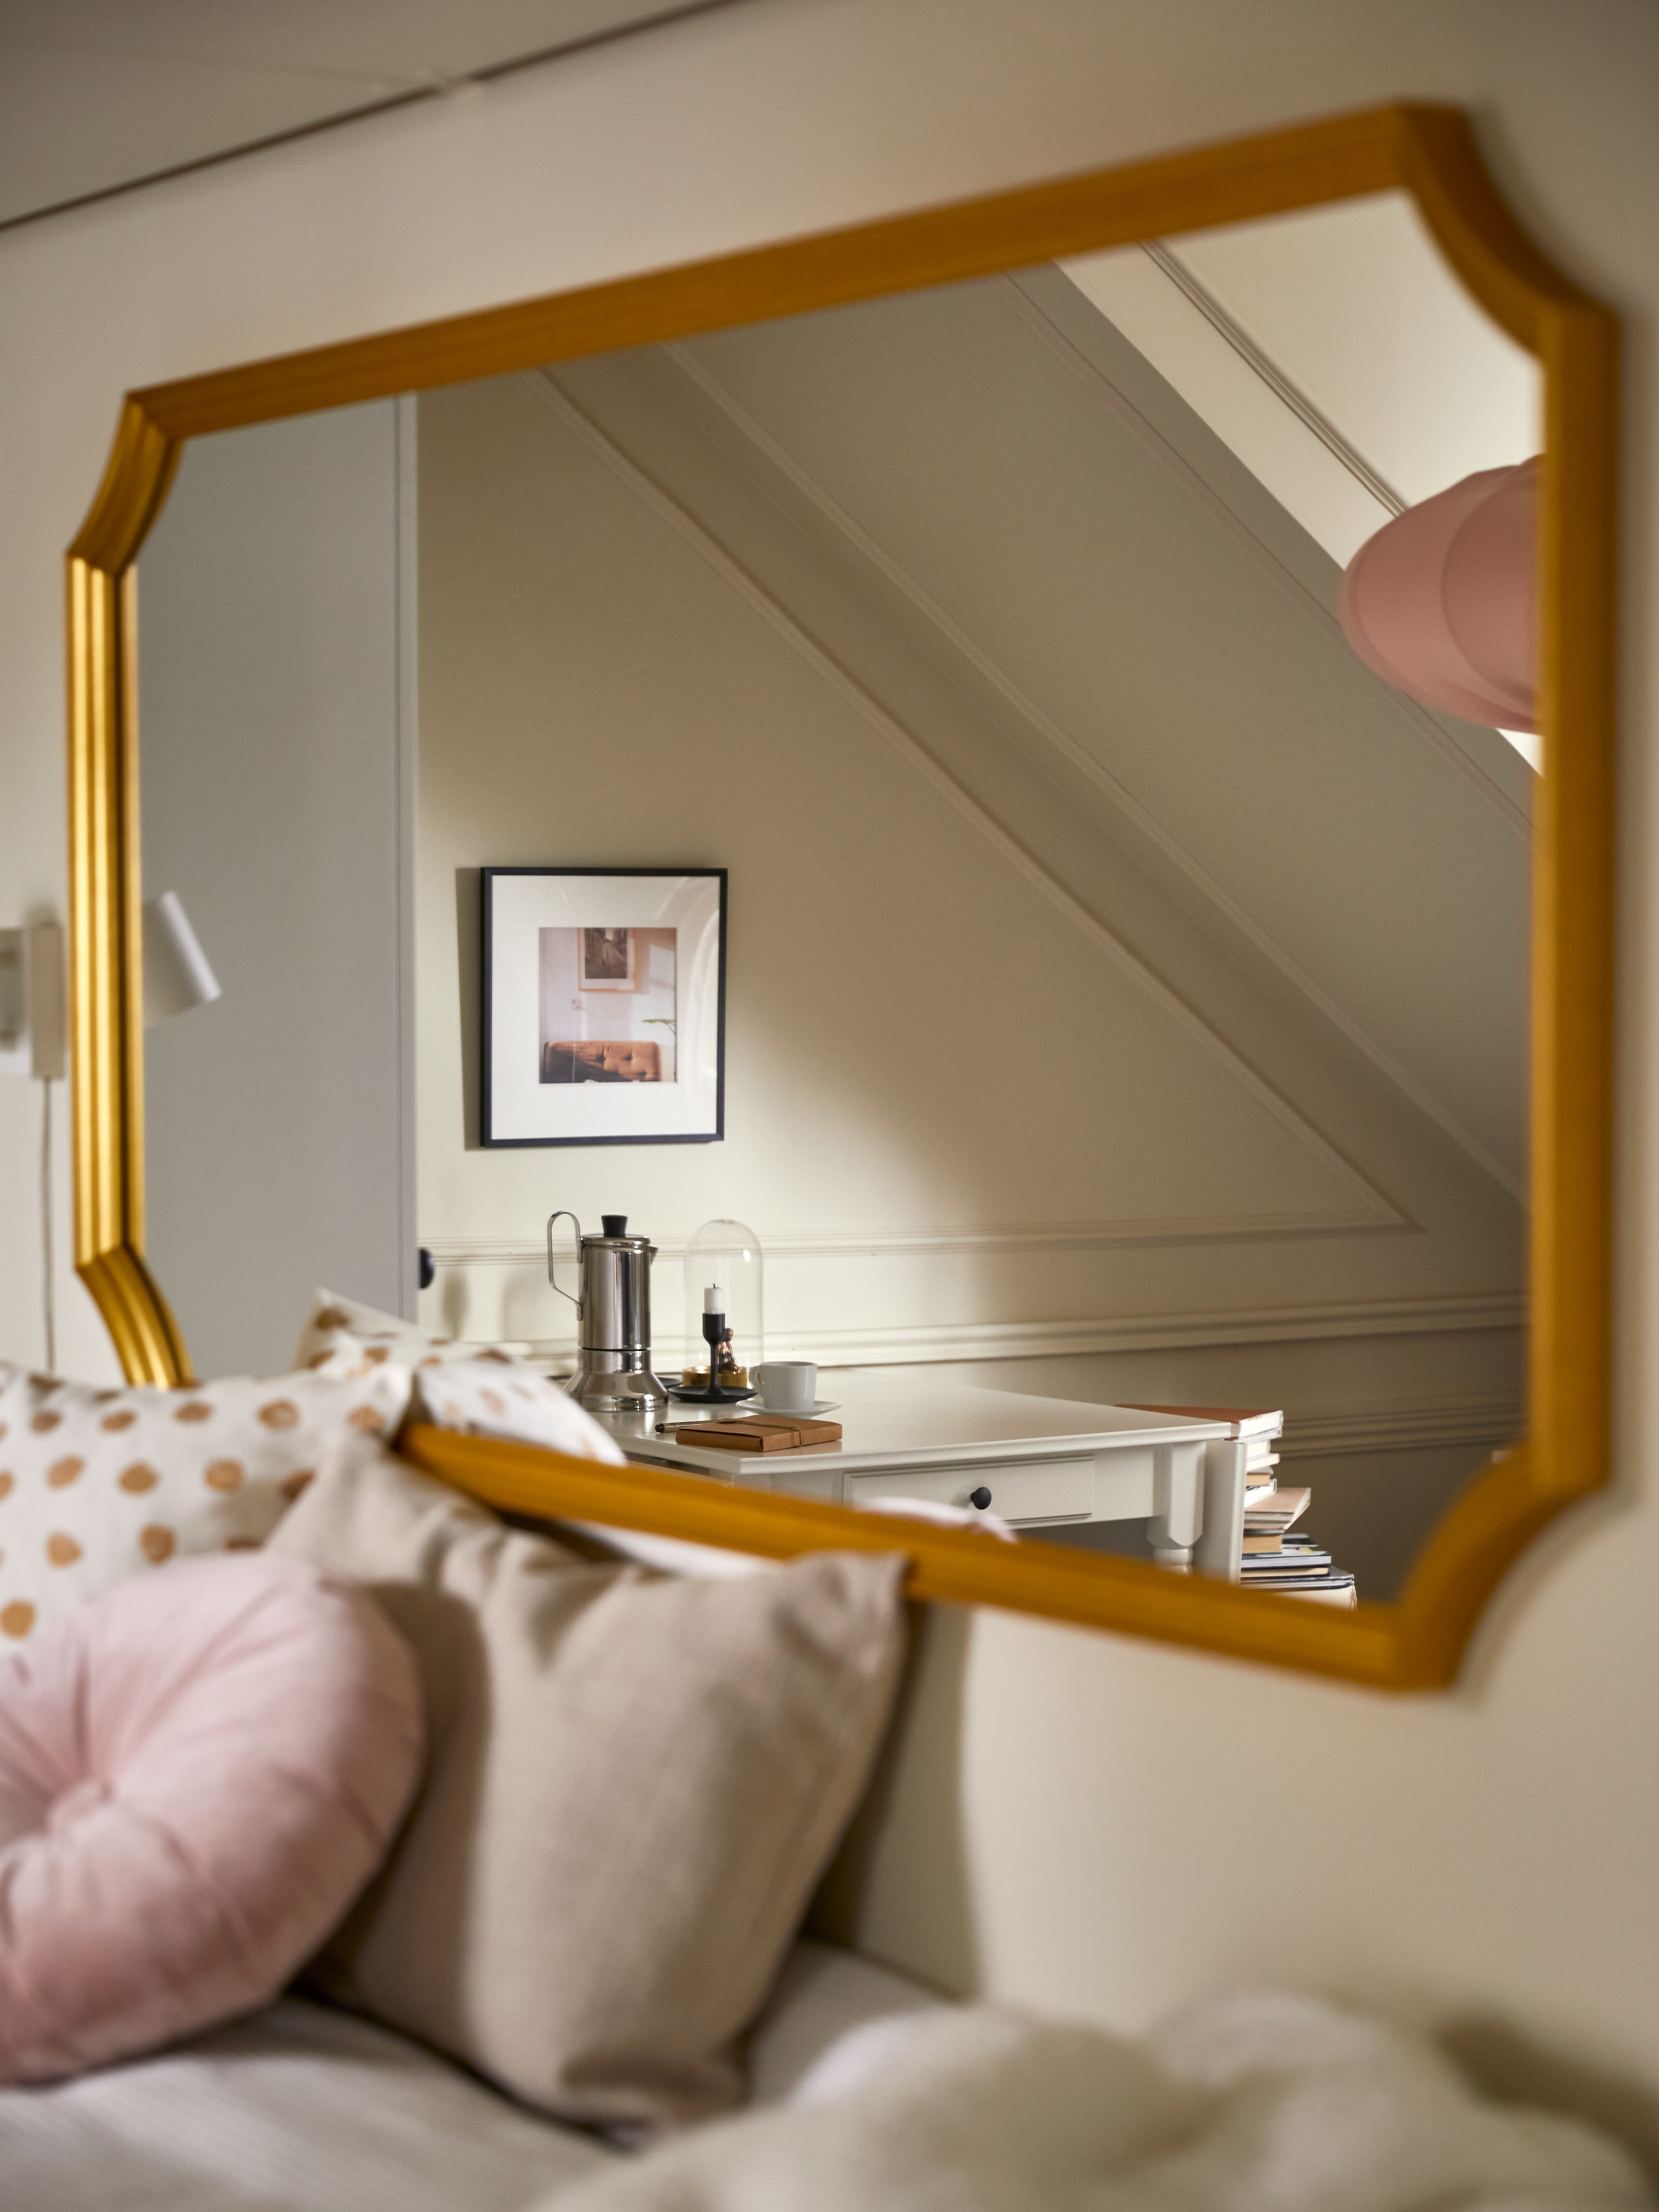 A SVANSELE gold-frame mirror at the head of a bed with cushions in various colors, plus a white table in the reflection.